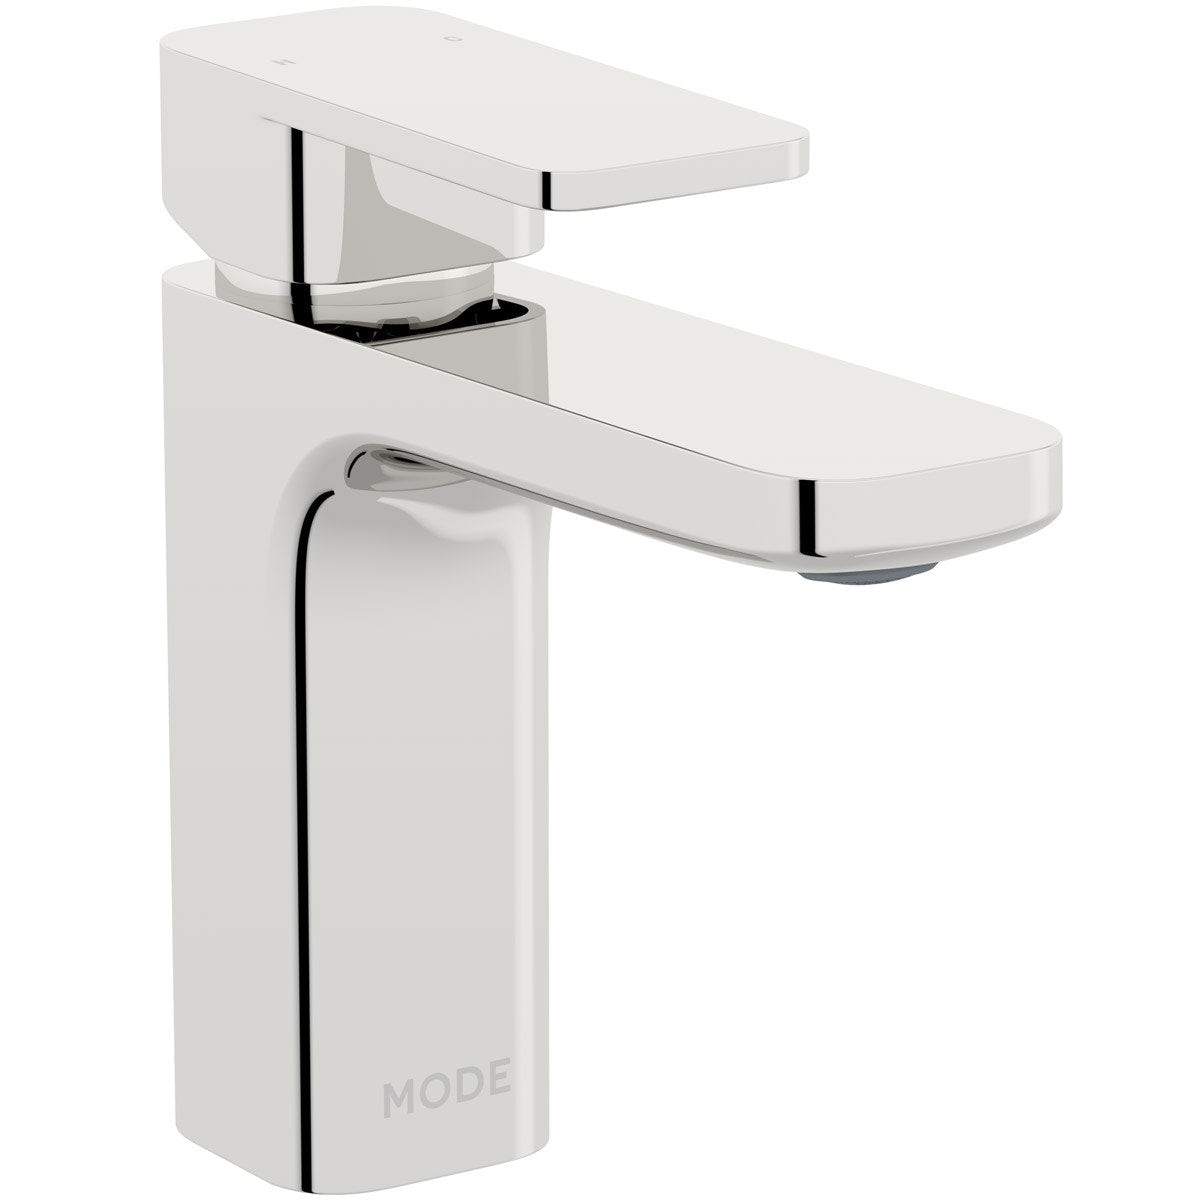 Mode Spencer square basin mixer tap offer pack